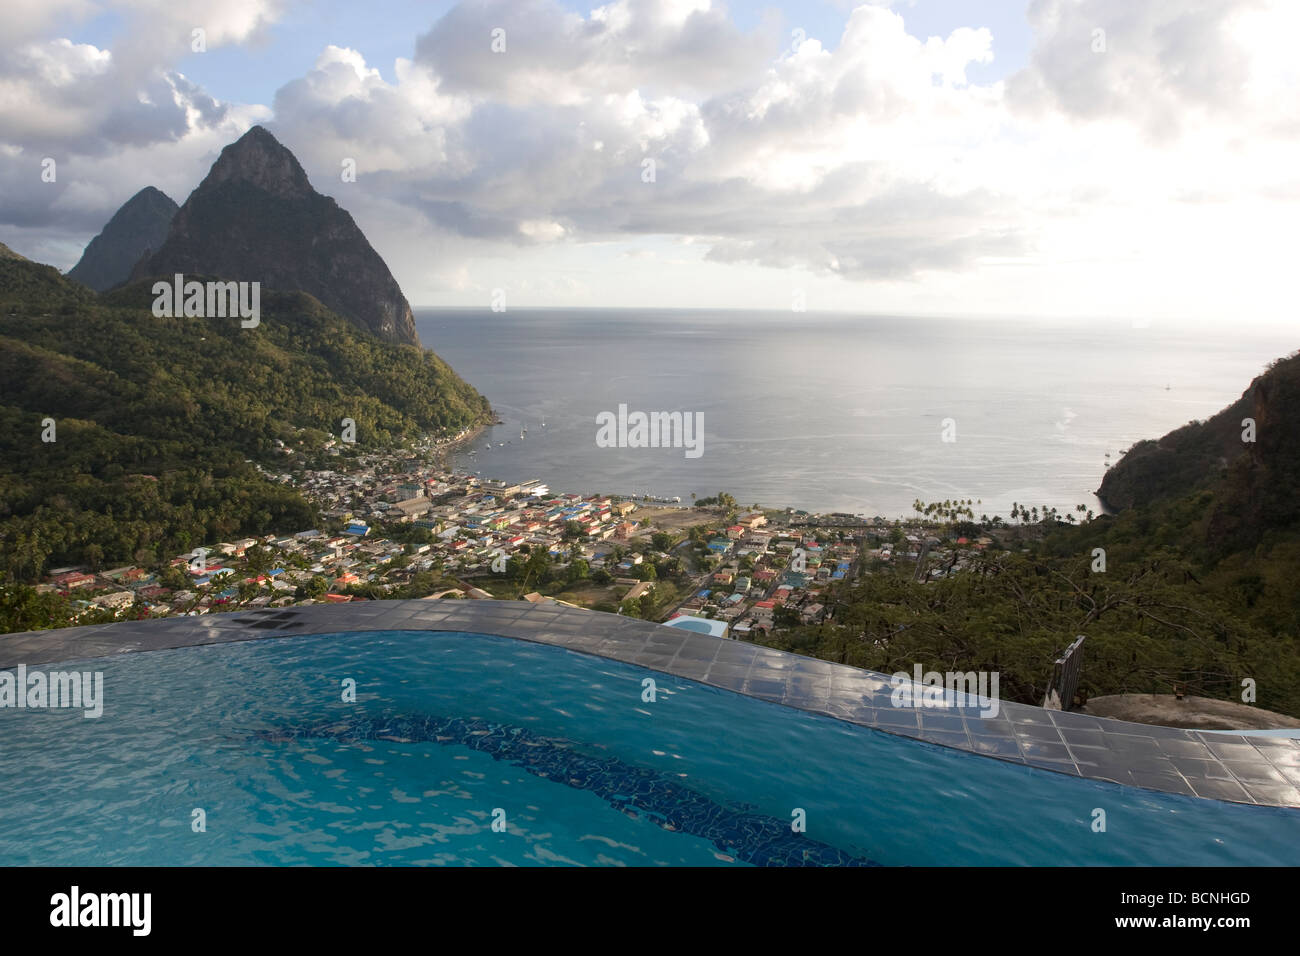 View of the Pitons in St. Lucia - Stock Image